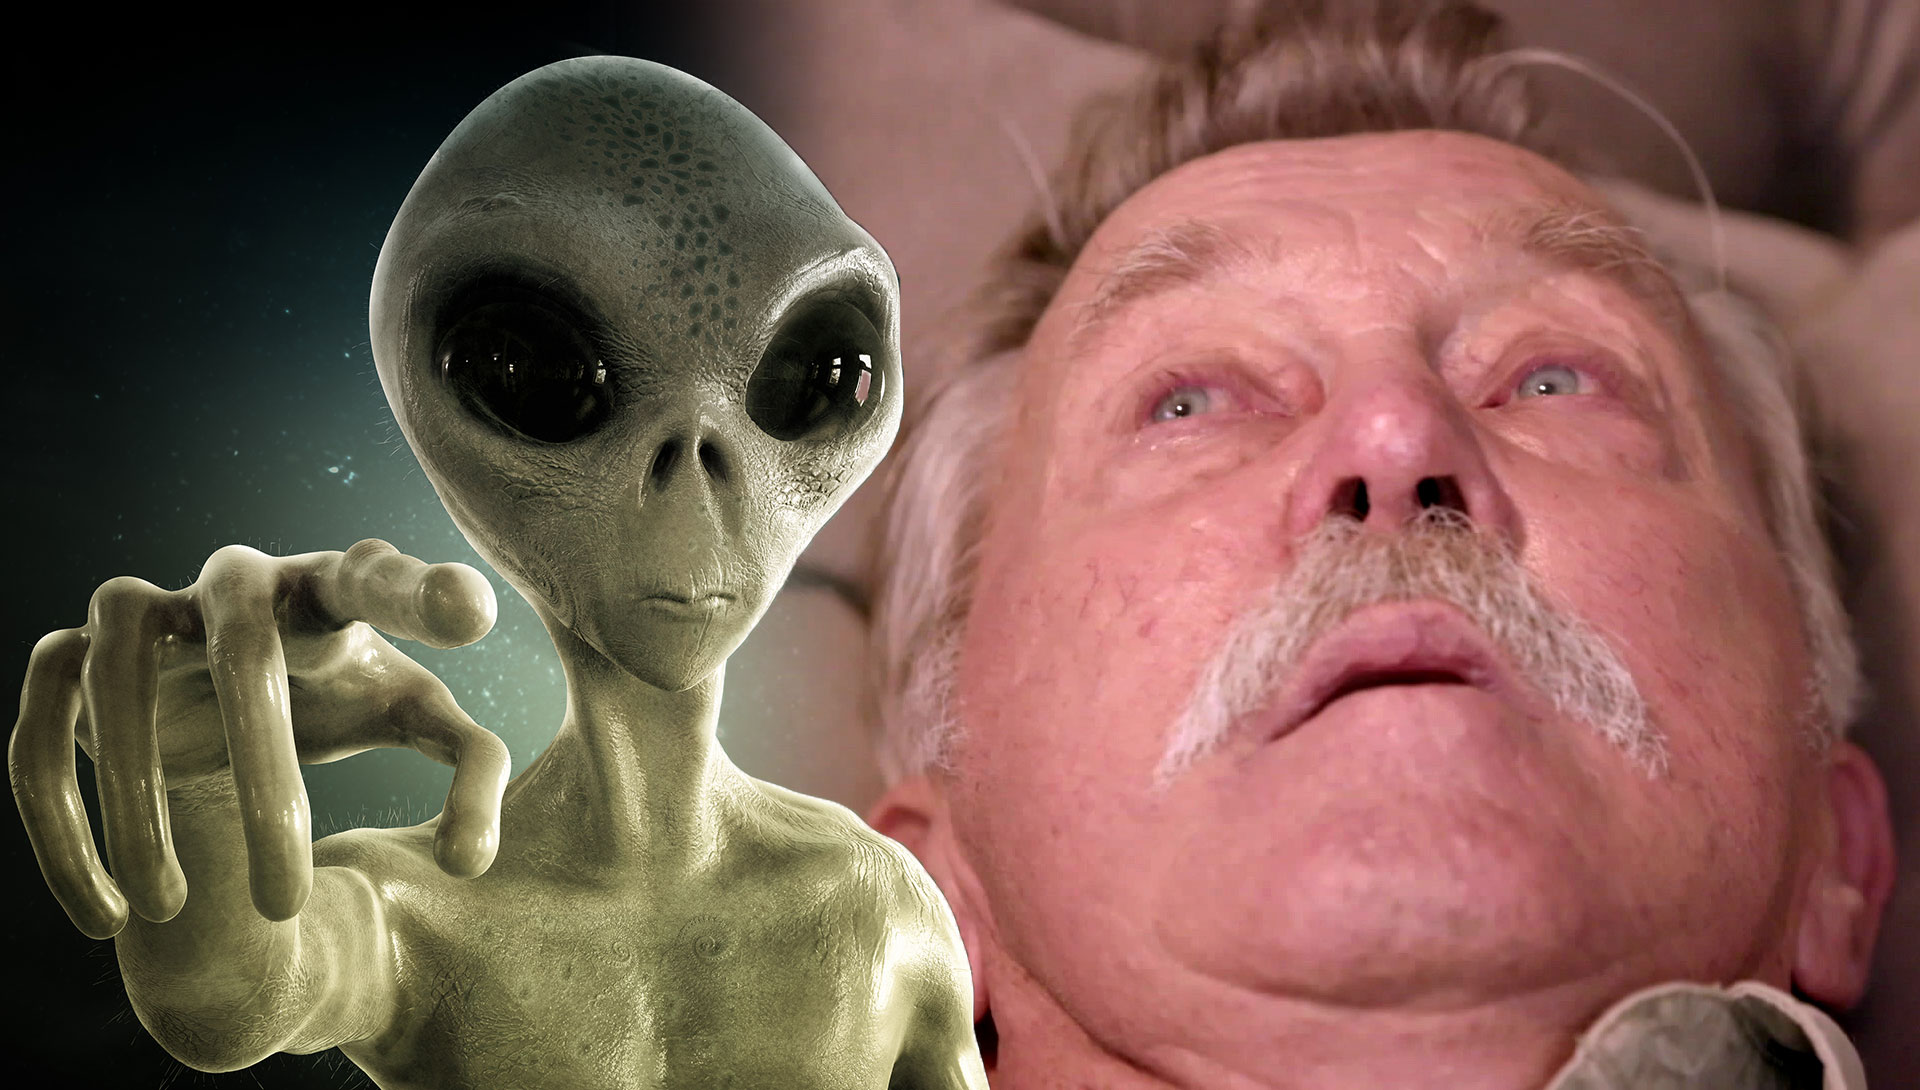 Alien Abduction Porn the hypnotherapist who treats victims of alleged alien abductions